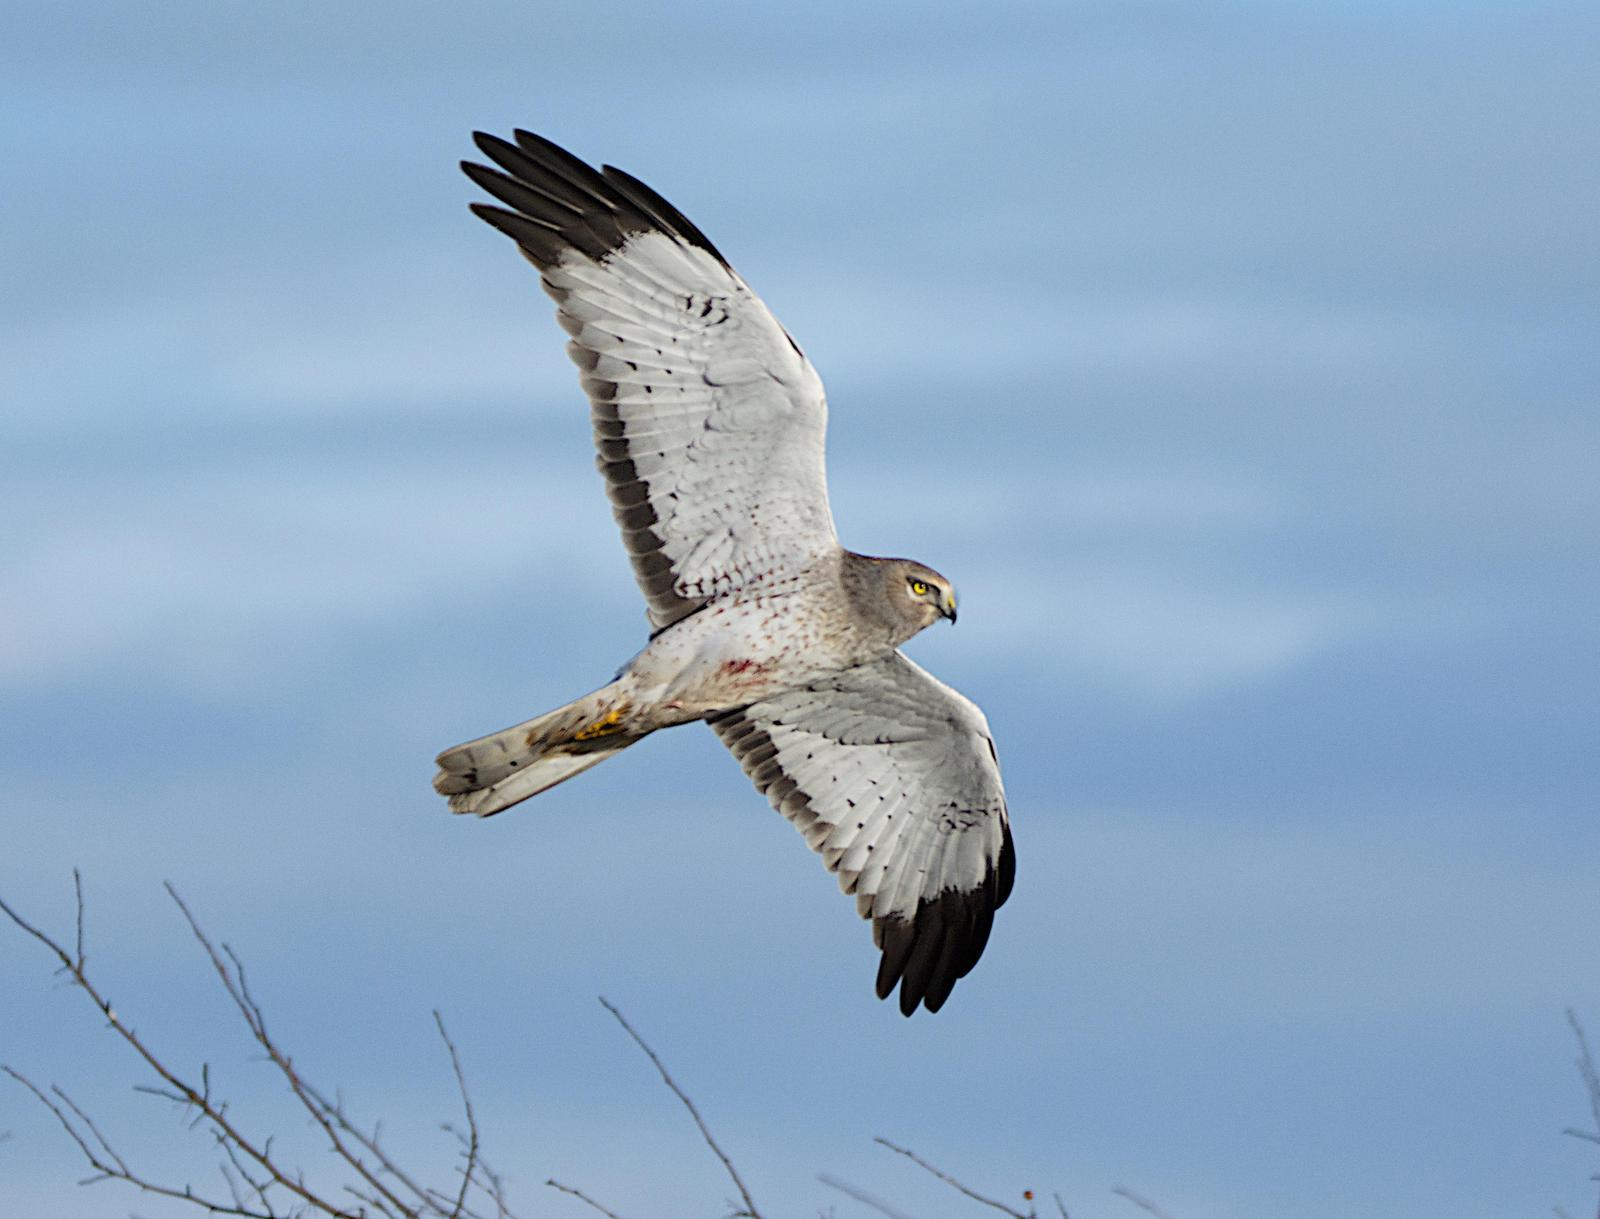 Northern Harrier Photo by Brian Avent